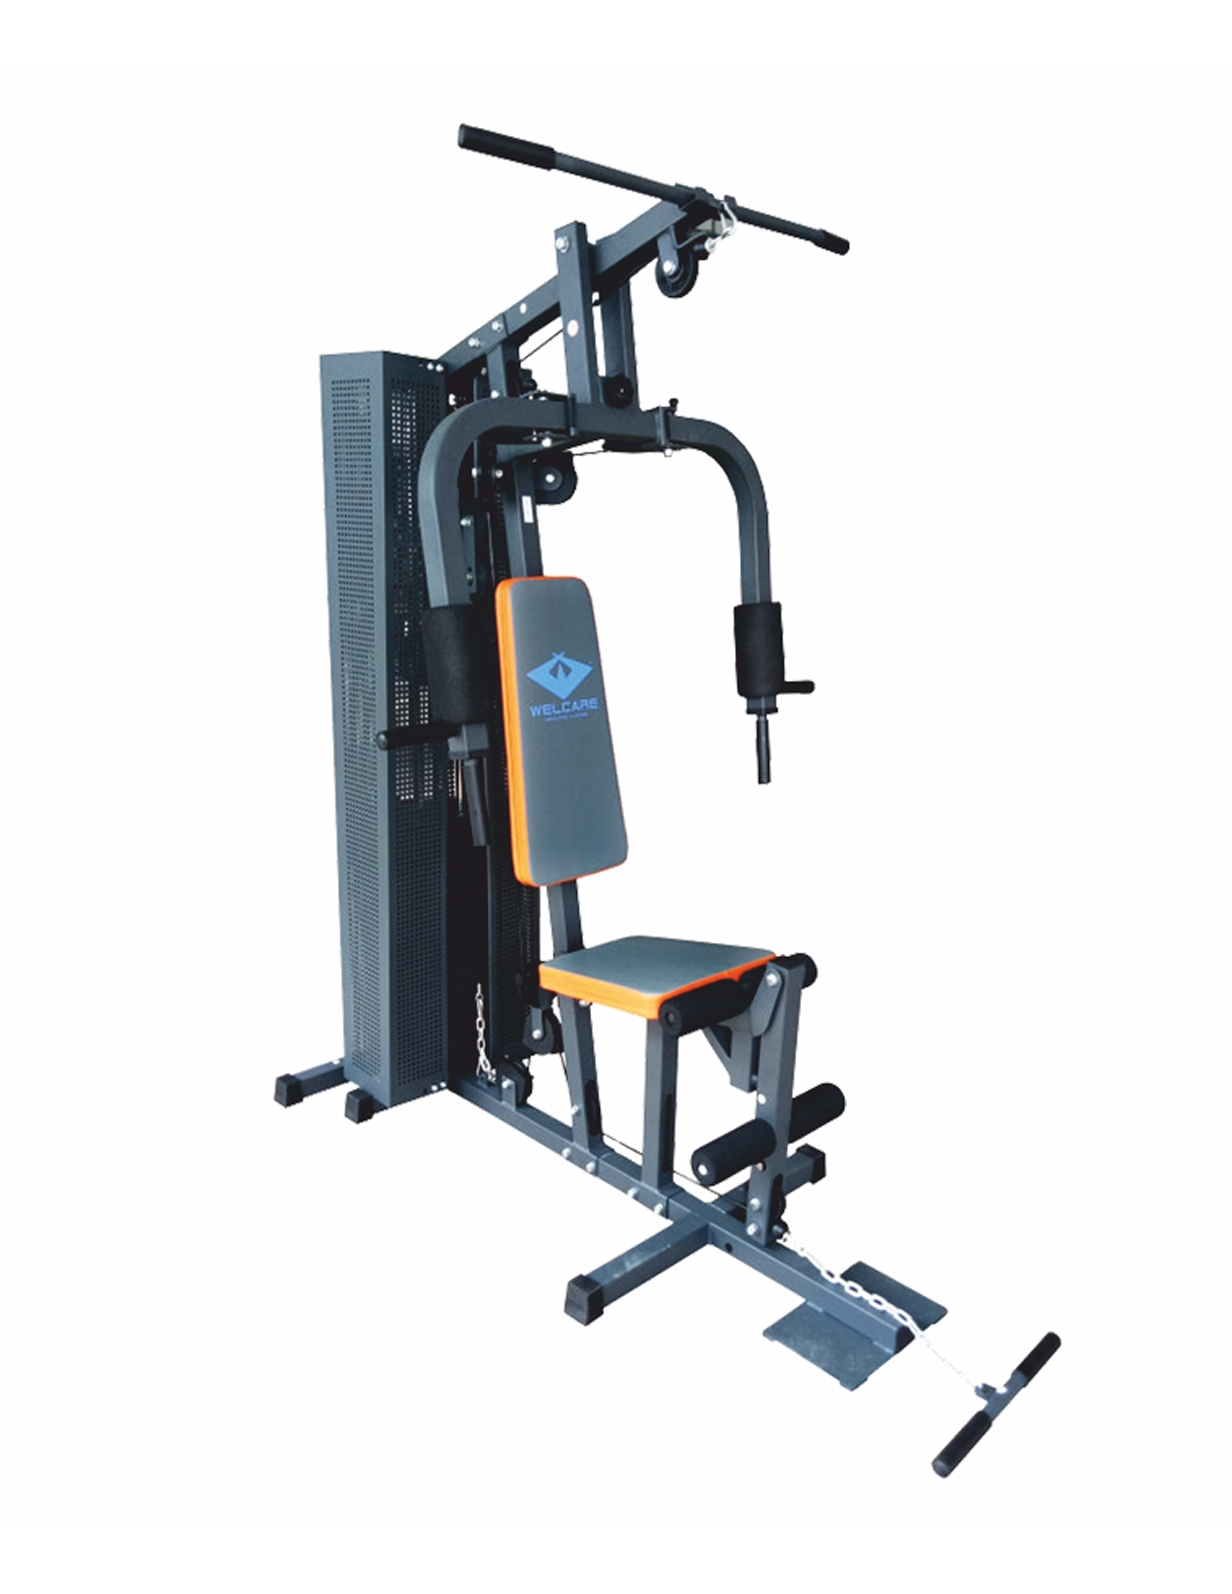 WC 4477 HOME GYM